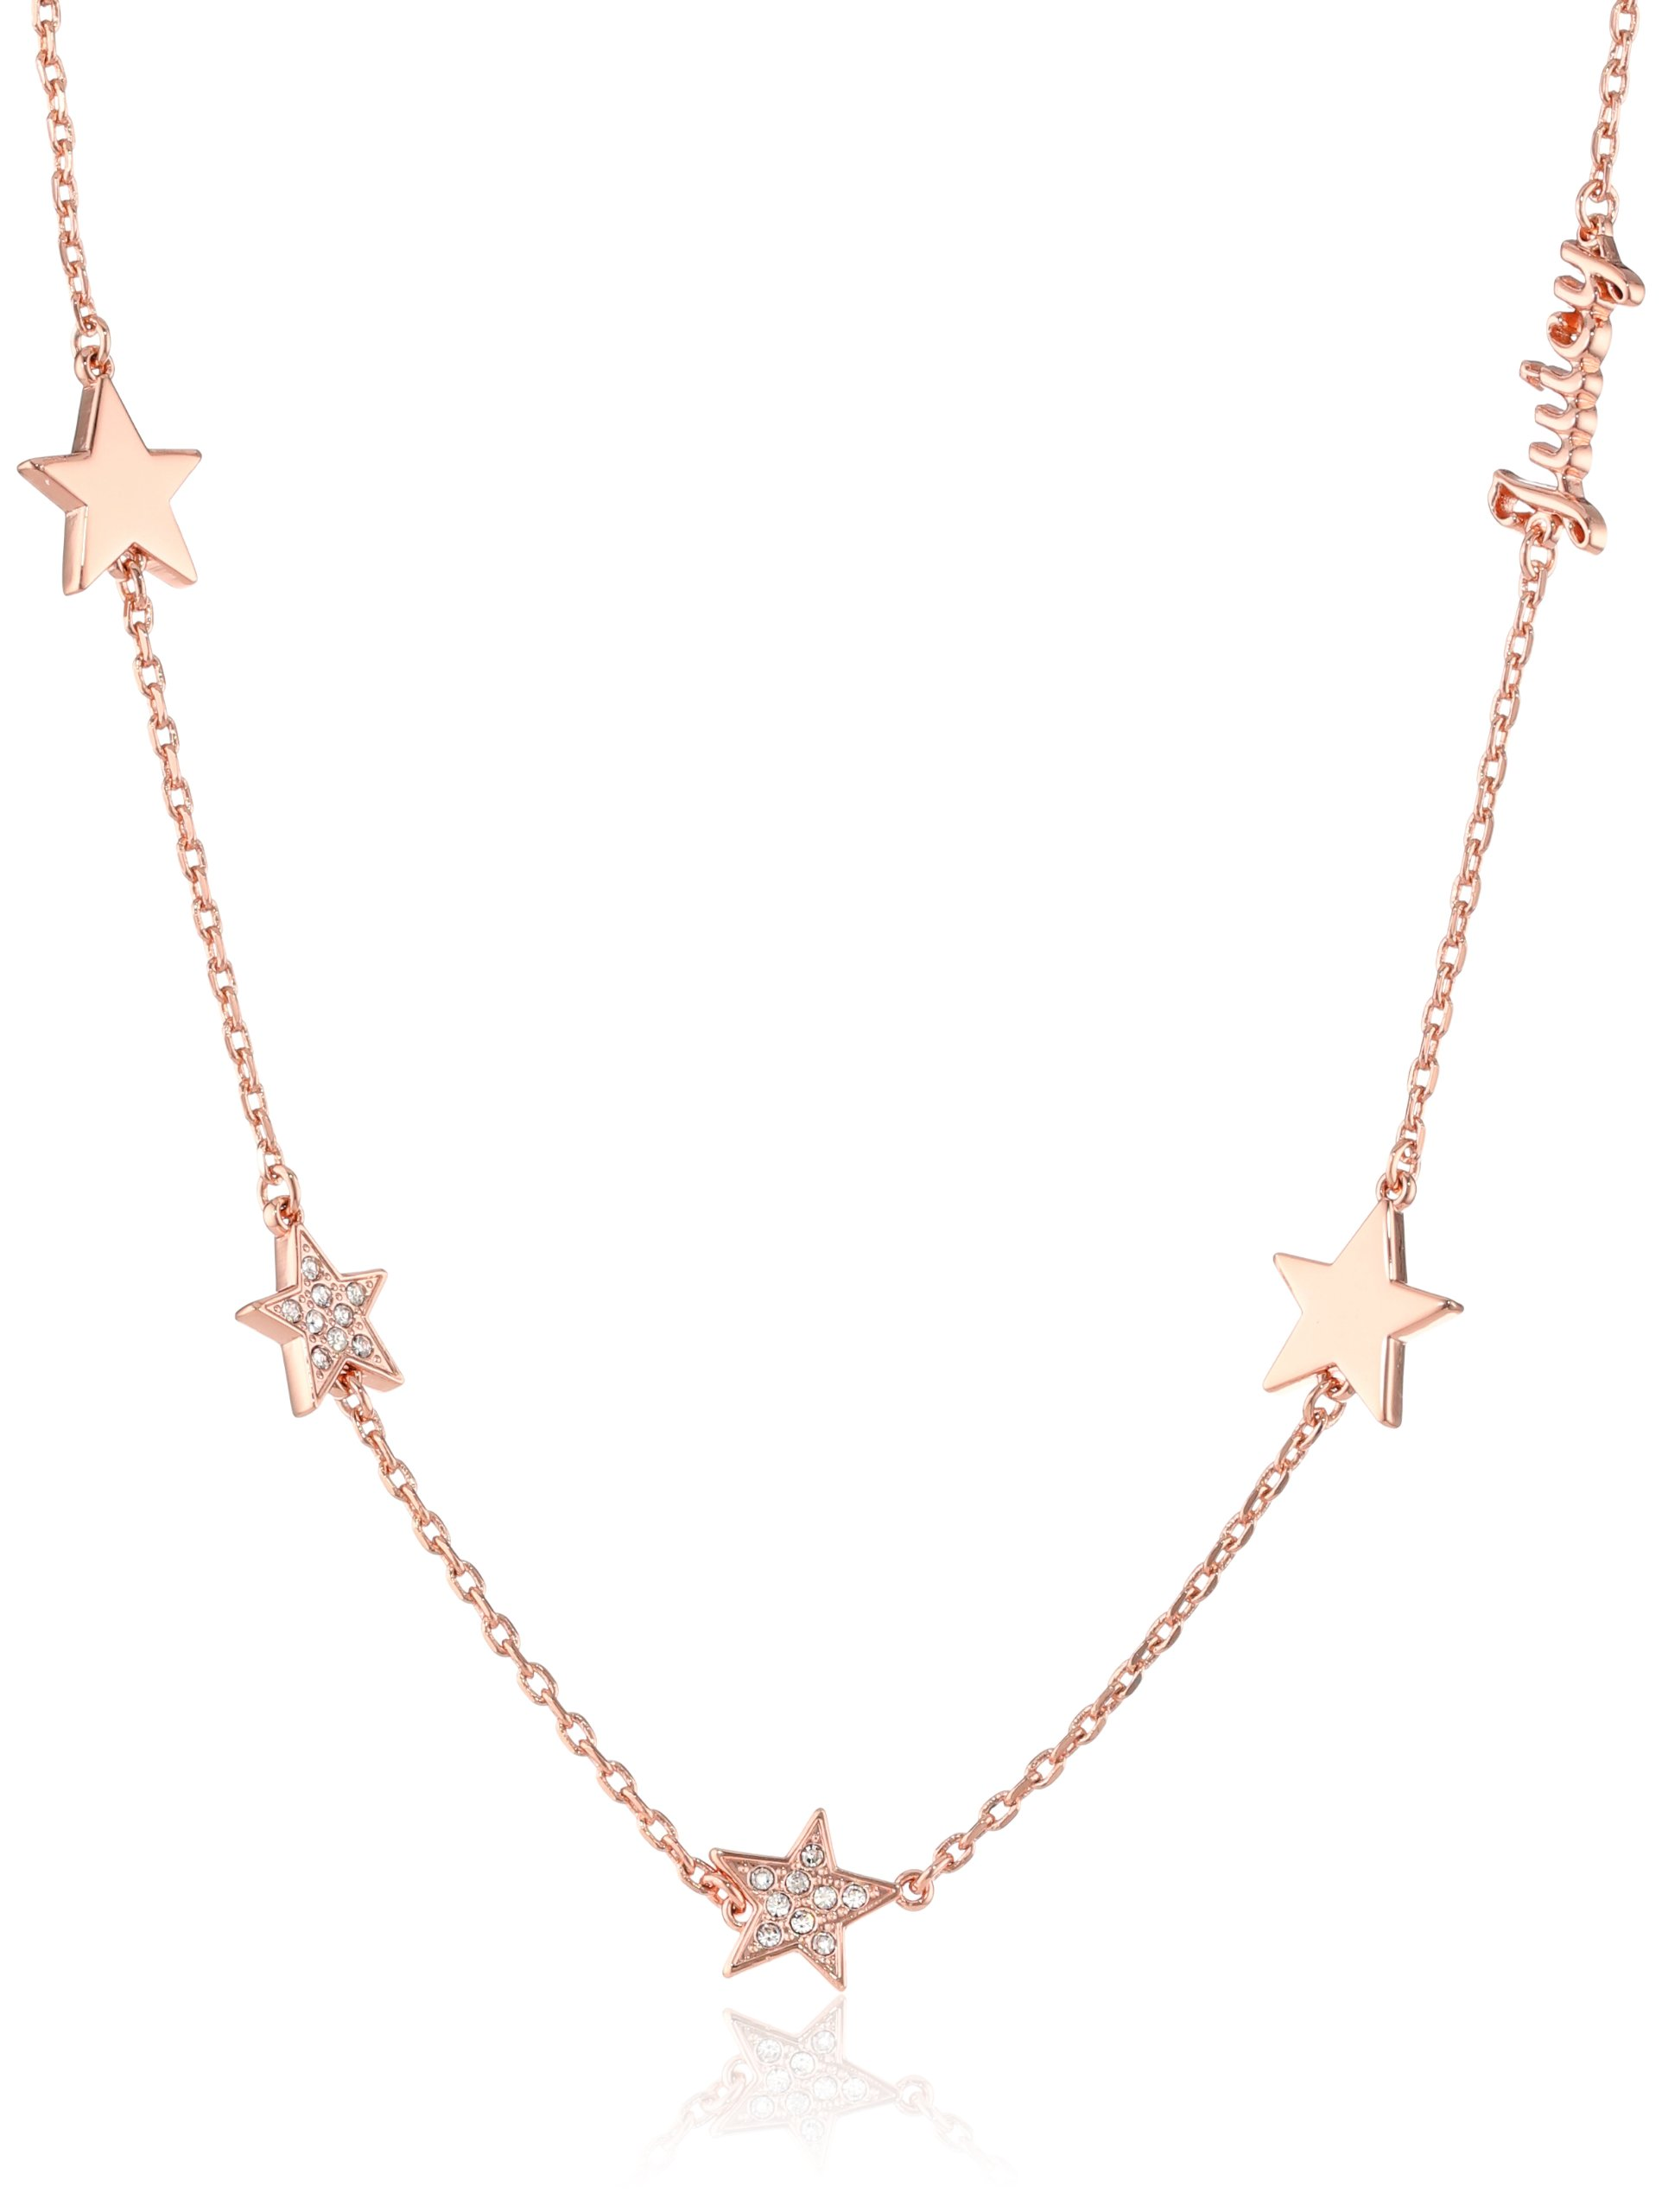 Juicy Couture Rose Gold Pave Star Strand Necklace, 32''